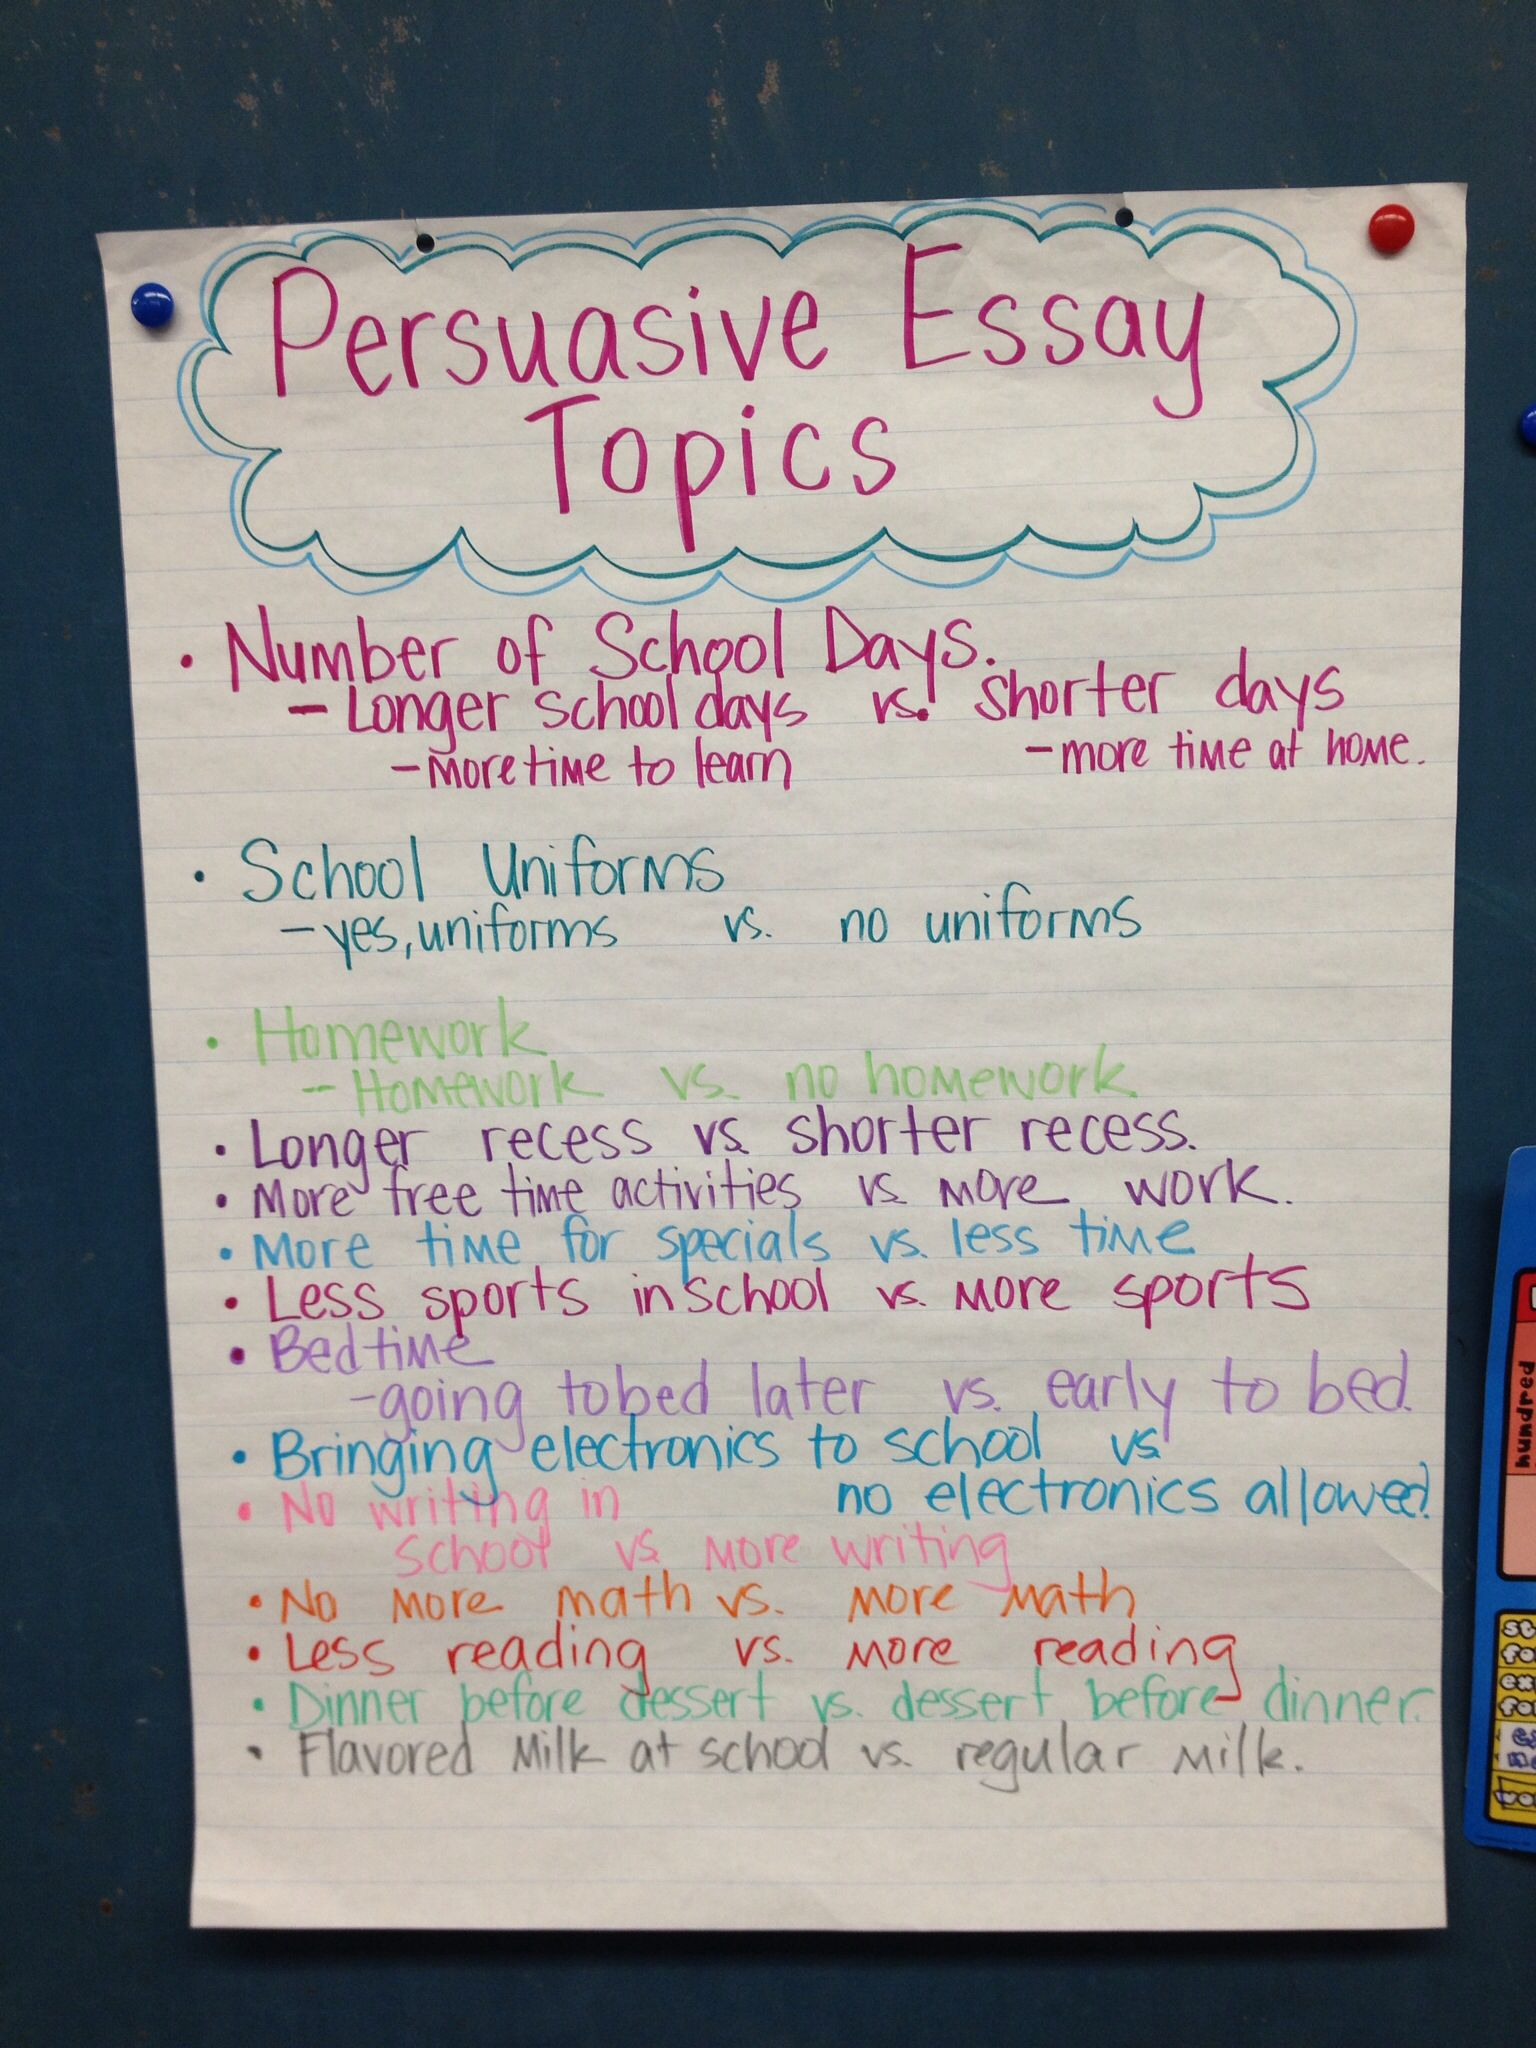 003 Ideas For Persuasive Essays Essay Example Stunning 4th Grade Prompts Middle School Uk Full